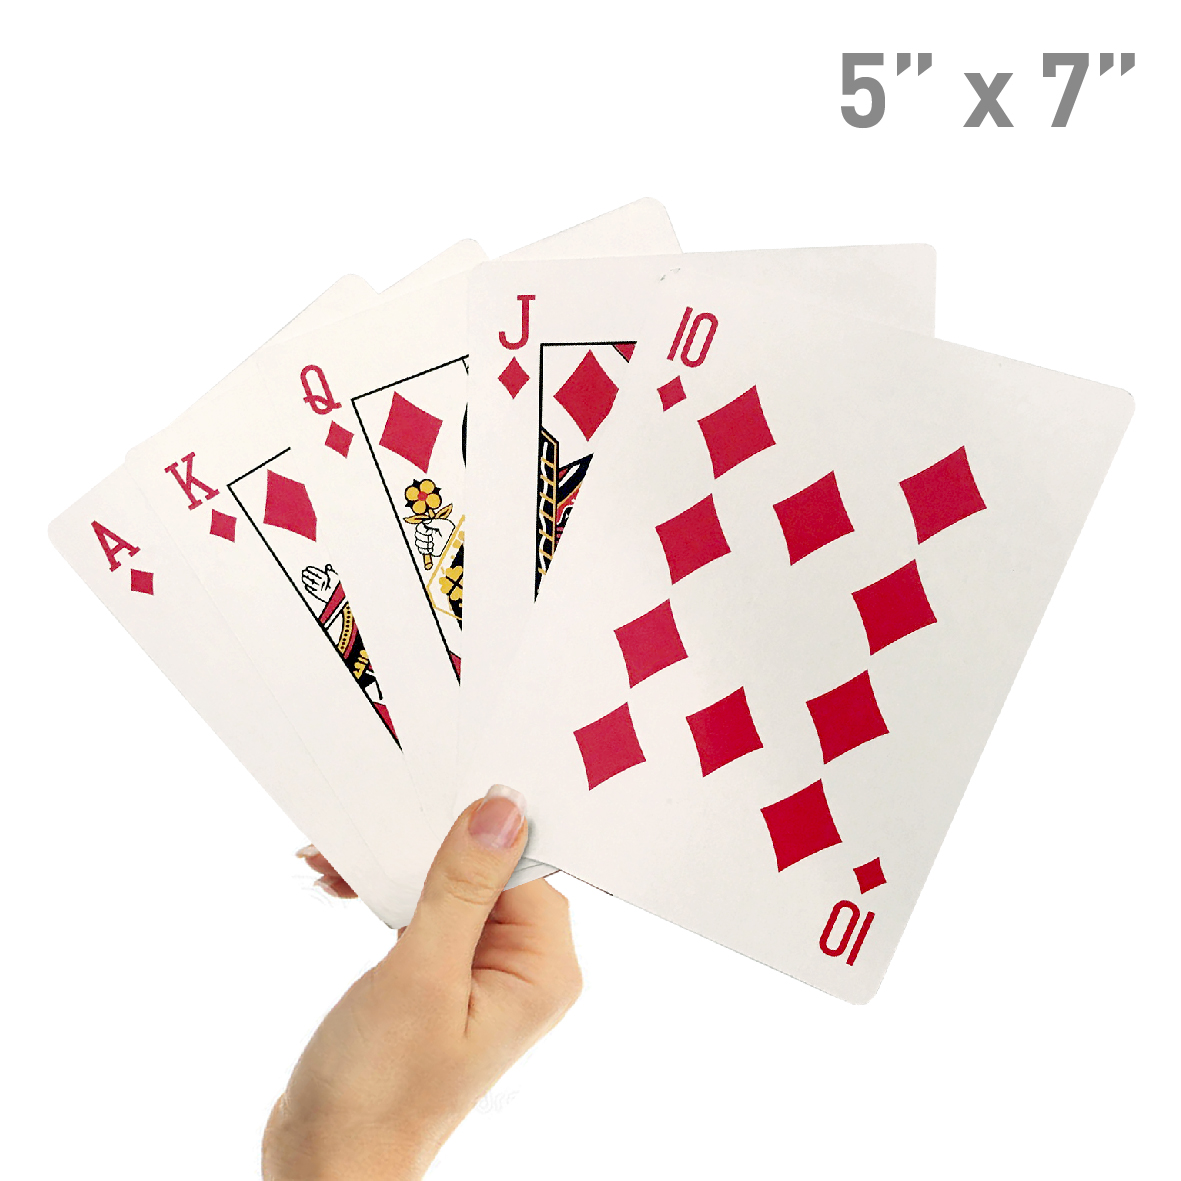 """8"""" X 11"""" Super Big Giant Playing Cards – Novelty Jumbo Cards for Kids, Teens or Seniors – Large Print – Poker Full Deck of Cards - Lowest Price on Amazon"""